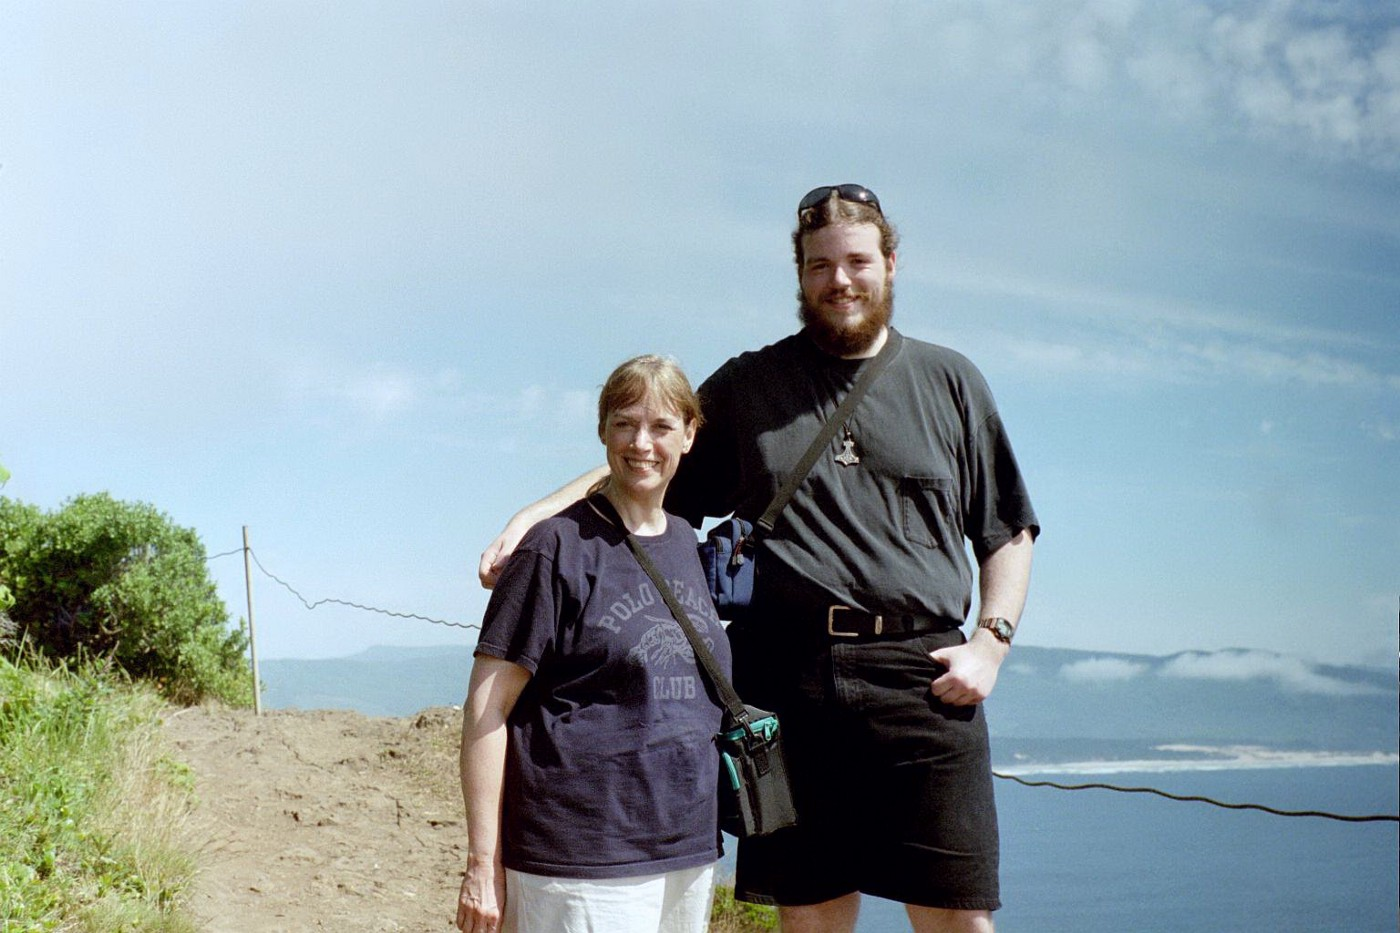 Mom and I at the Oregon coast in August 2002.